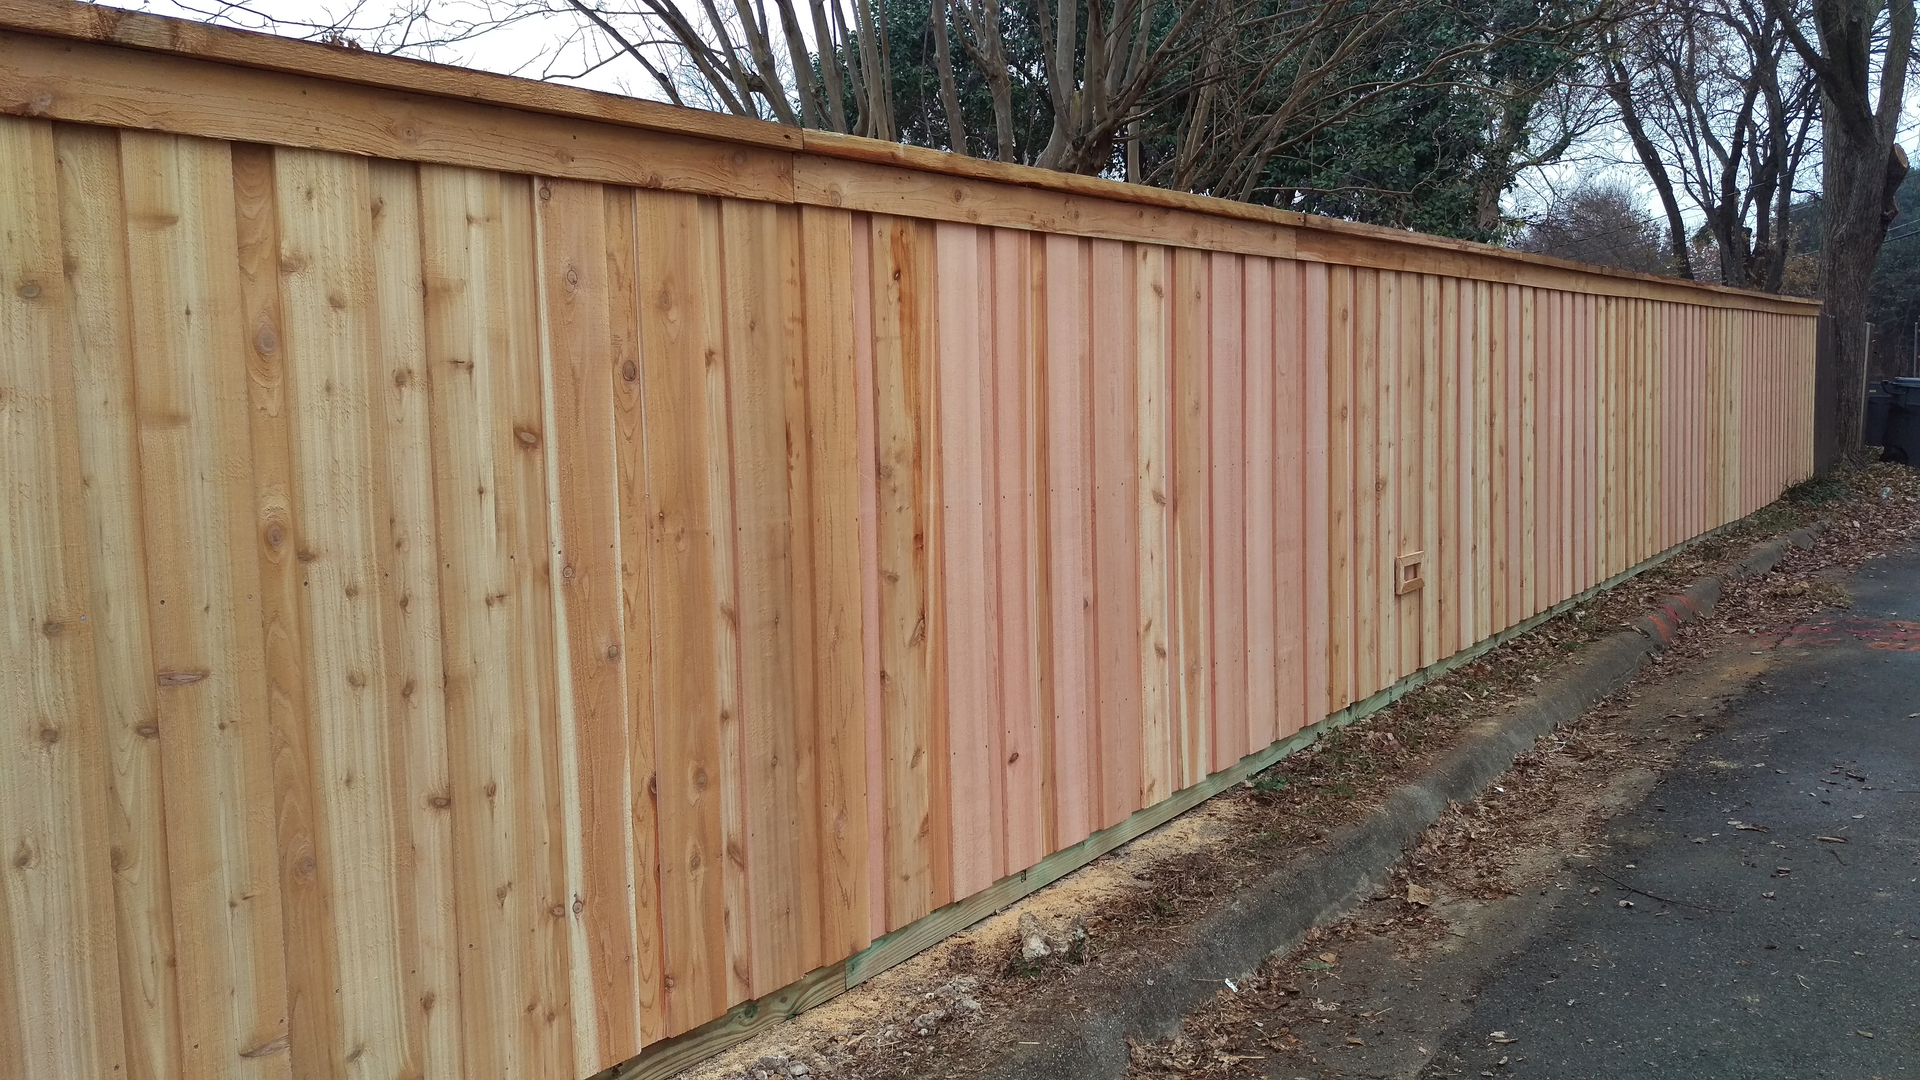 6ft Cedar Board-on-Board style fence replacement